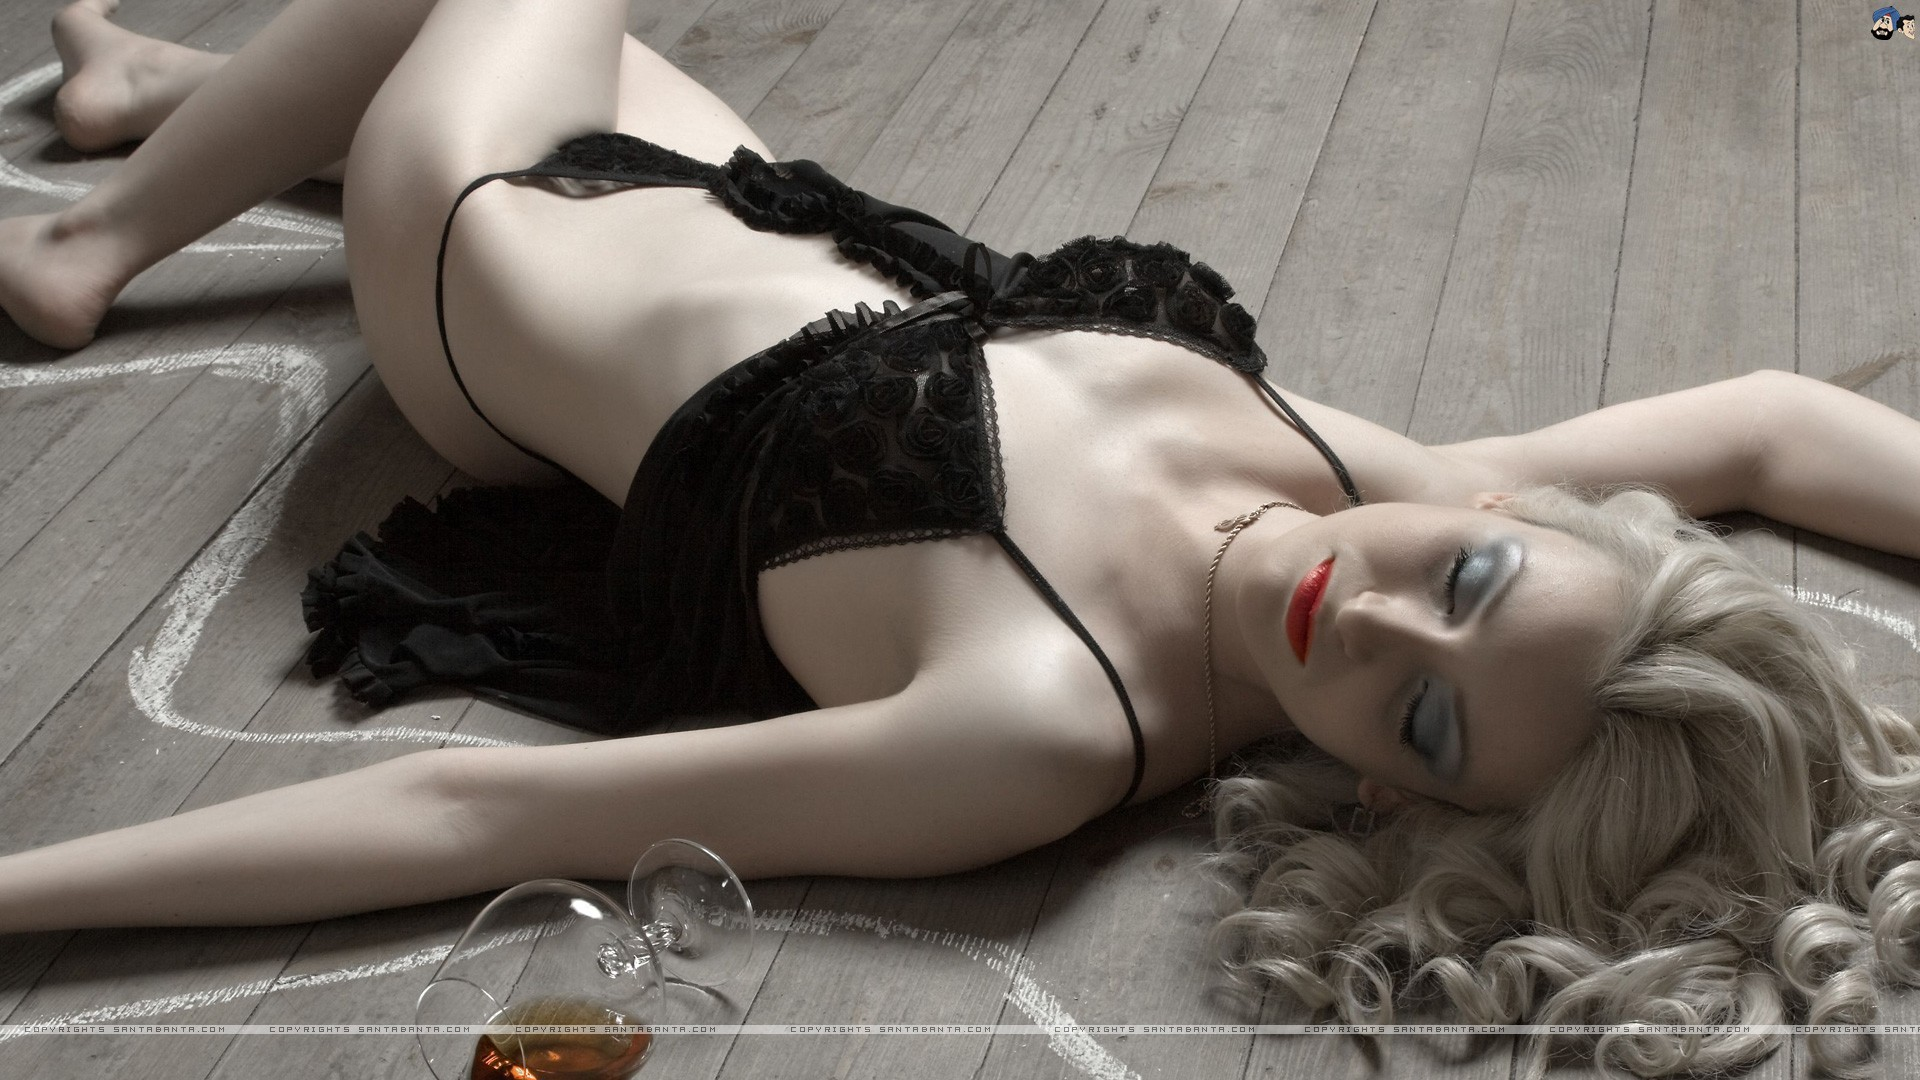 lingerie blondes Women models HD Wallpaper